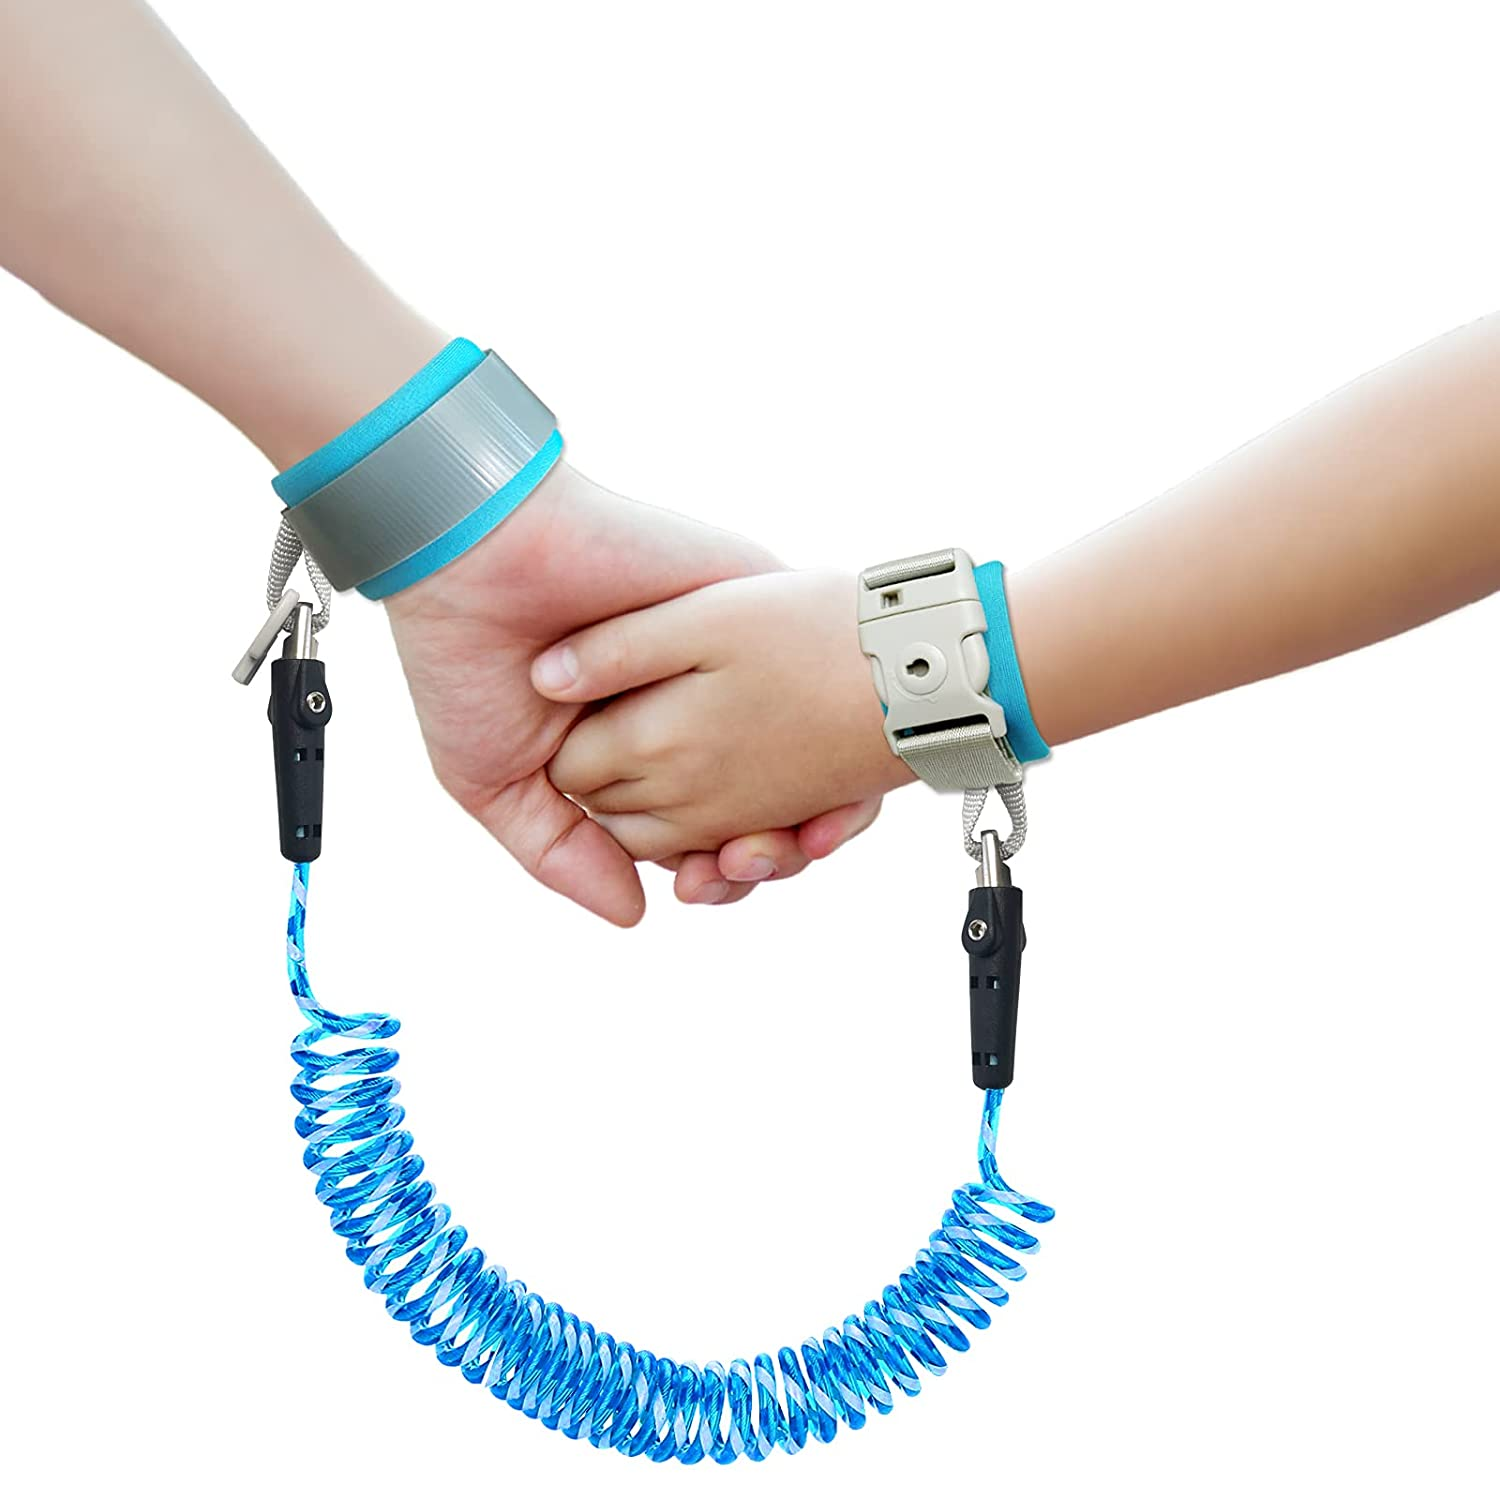 Anti Lost Wrist Link with Key Lock | Reflective Toddler Safety Wrist Leash for Toddlers, Babies & Kids Blue 8.2 feet